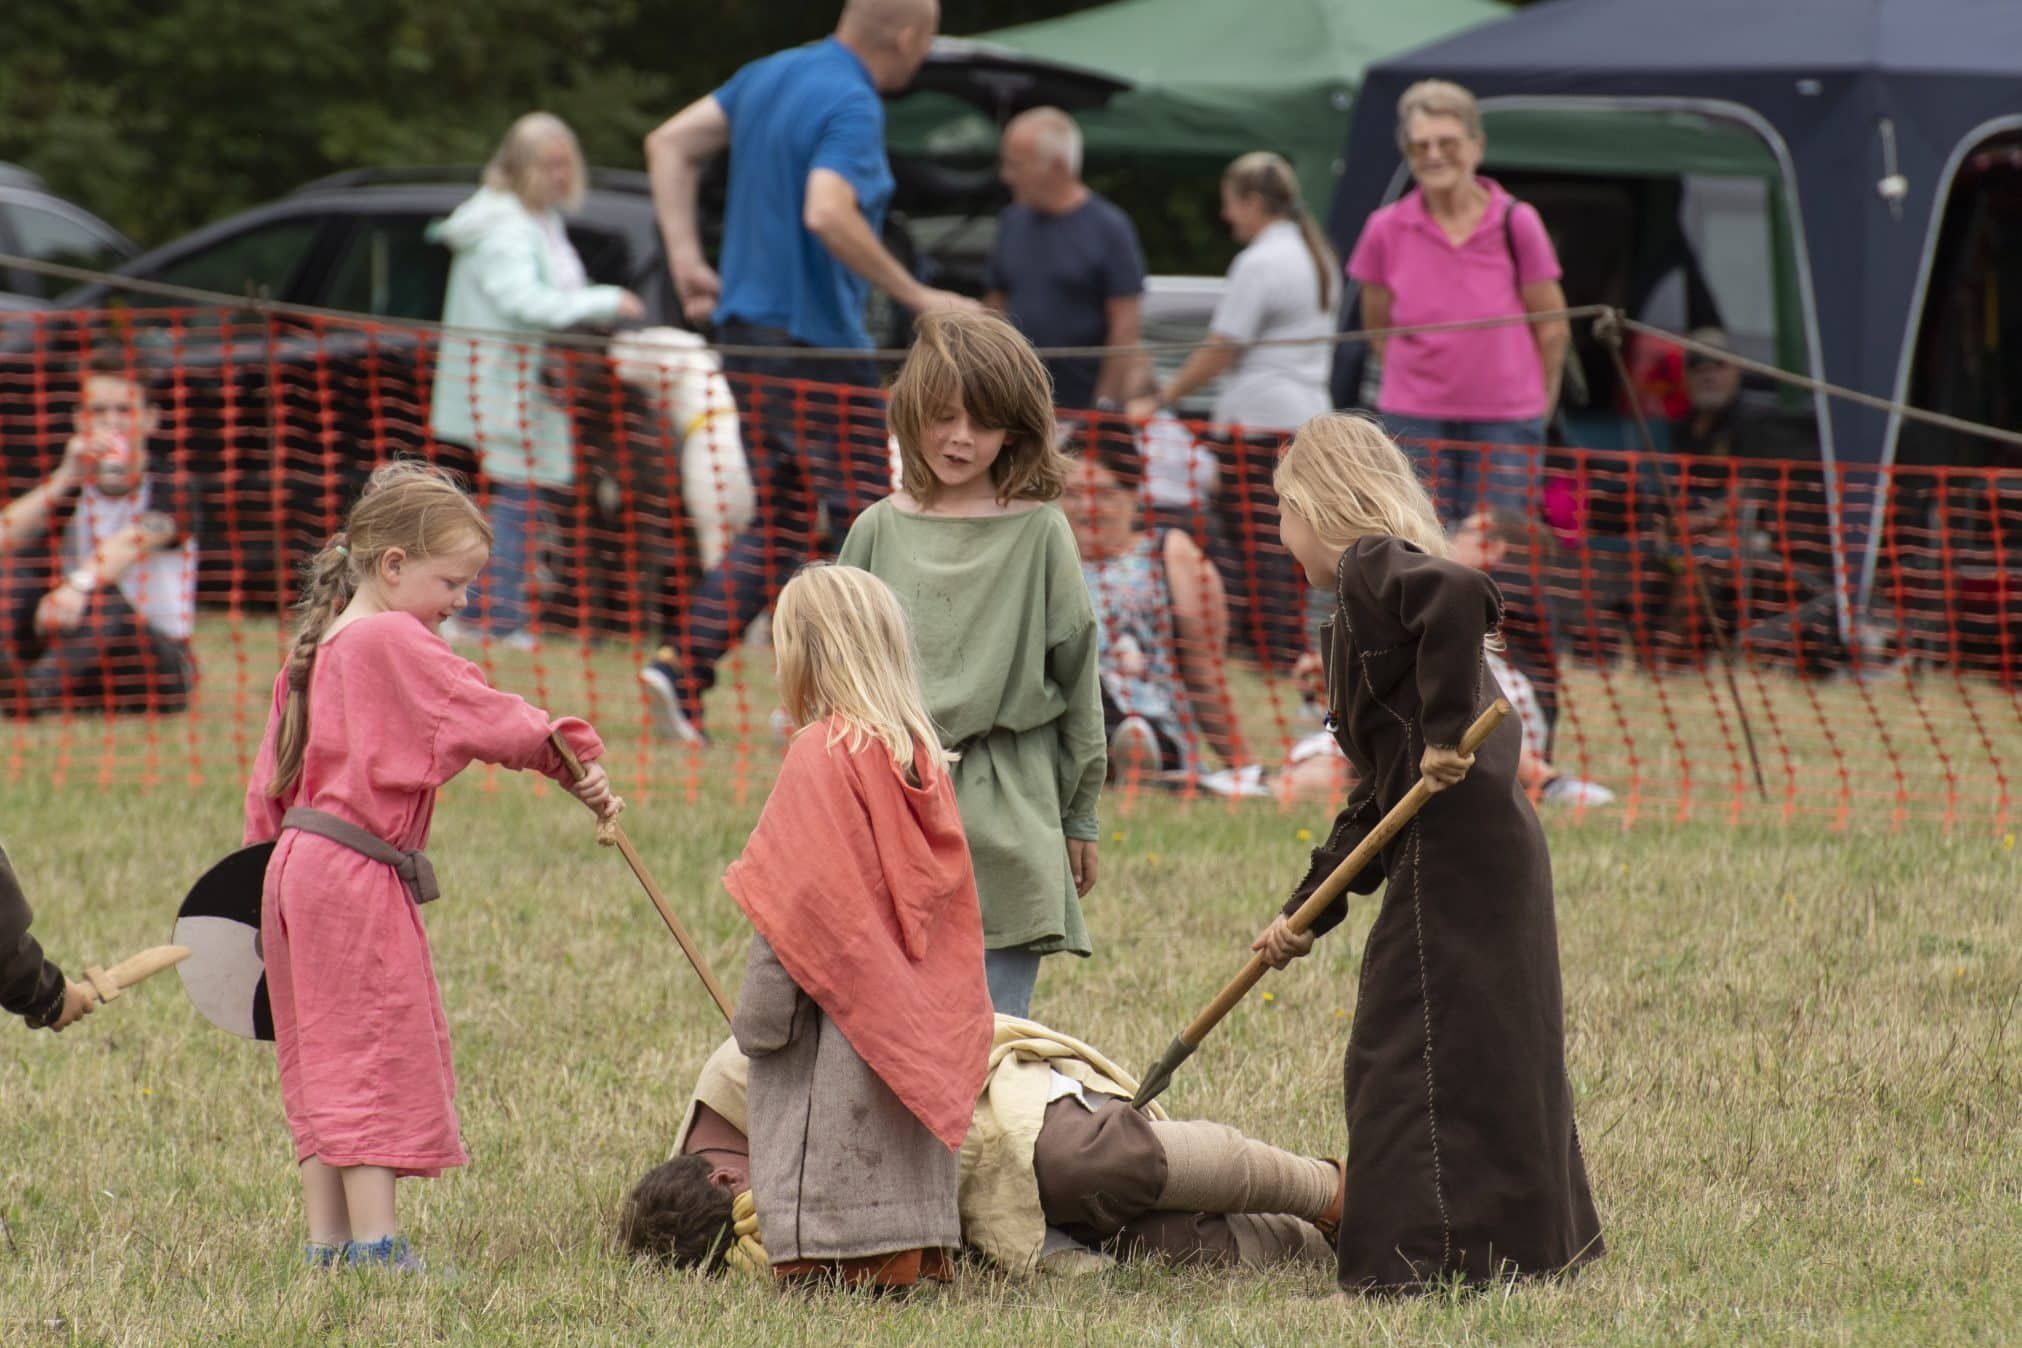 Viking children defeating their opponent in battle at Green Fayre, Beacon Country Park